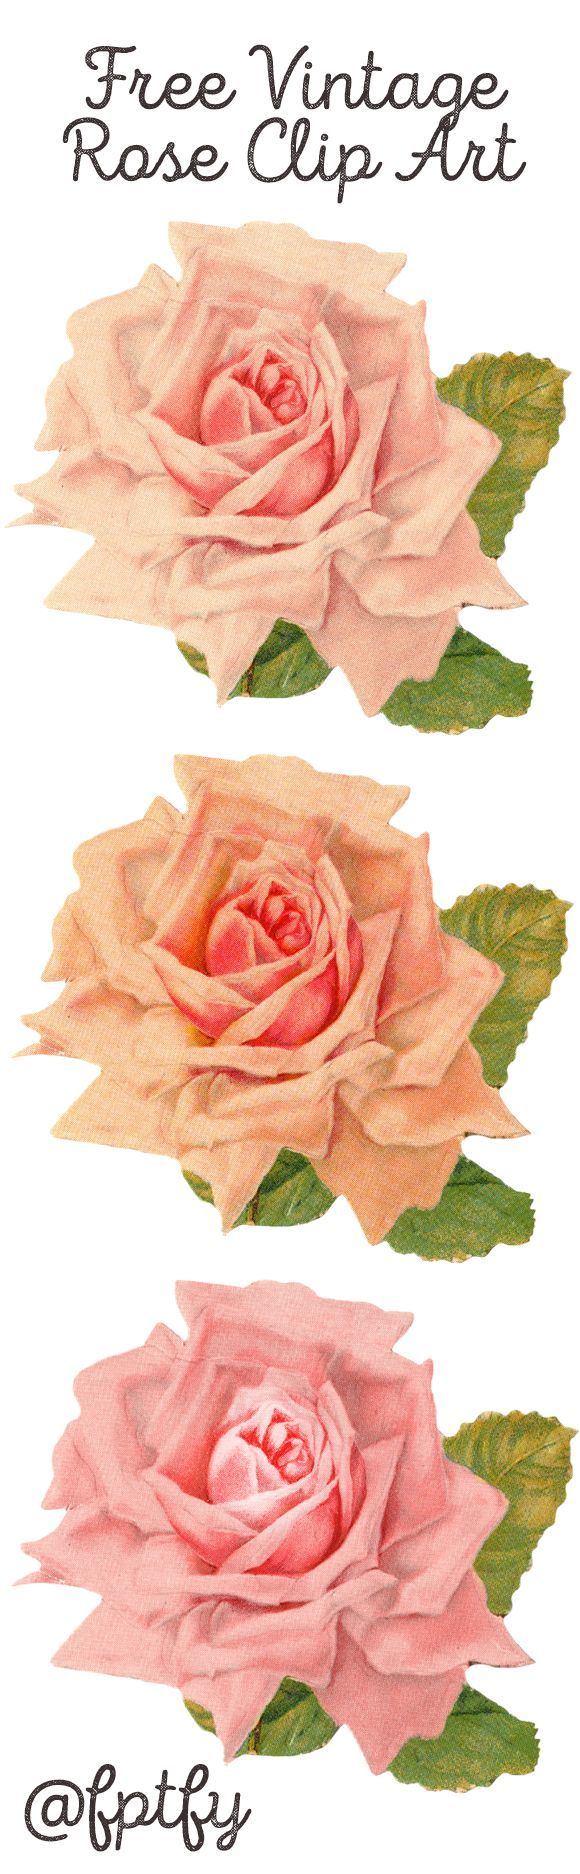 Free Beautiful Vintage Rose Clip Art available for personal